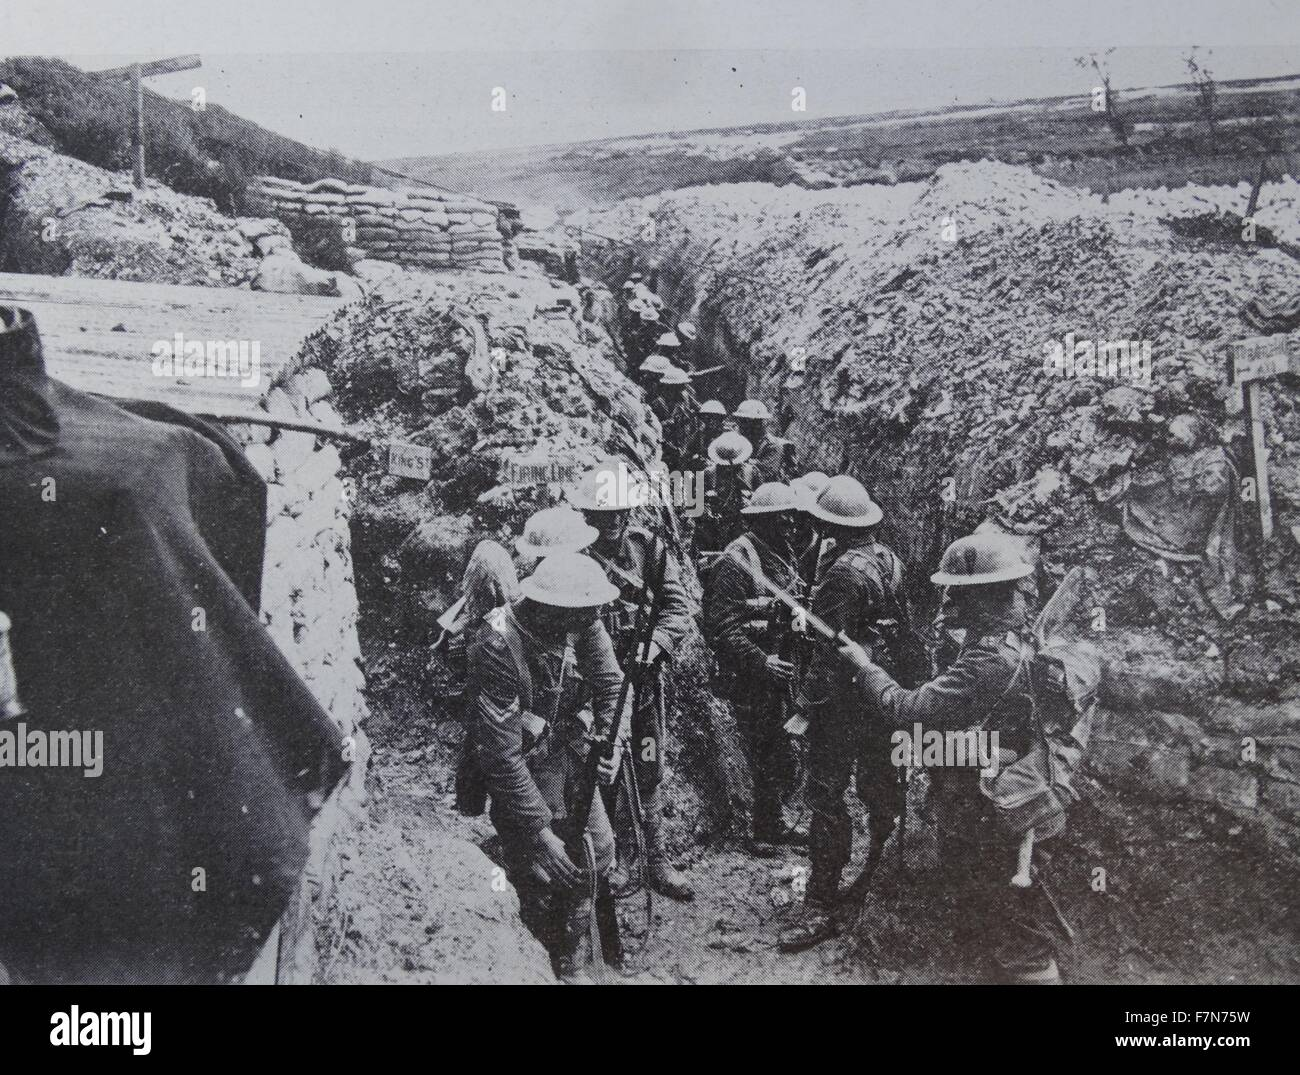 Before the Battle of Albert in July 1916, the 1st Lancashire Fusiliers fix bayonets.   This trench is typical of Stock Photo